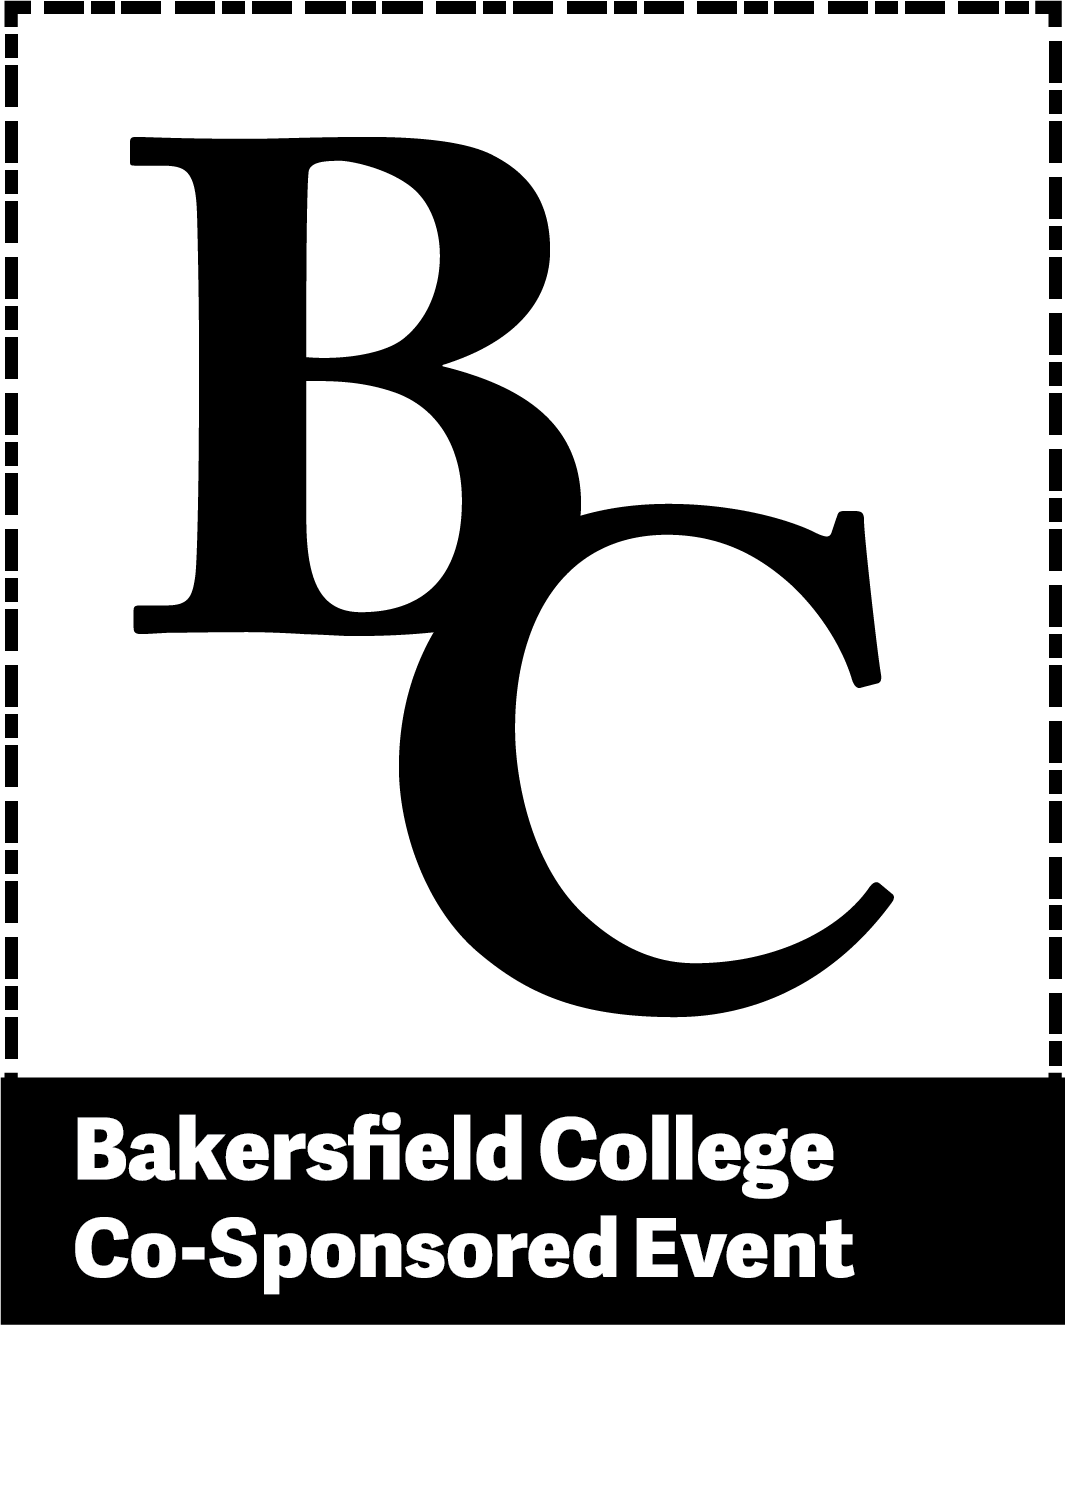 BC Bakersfield College Co-sponsored event.